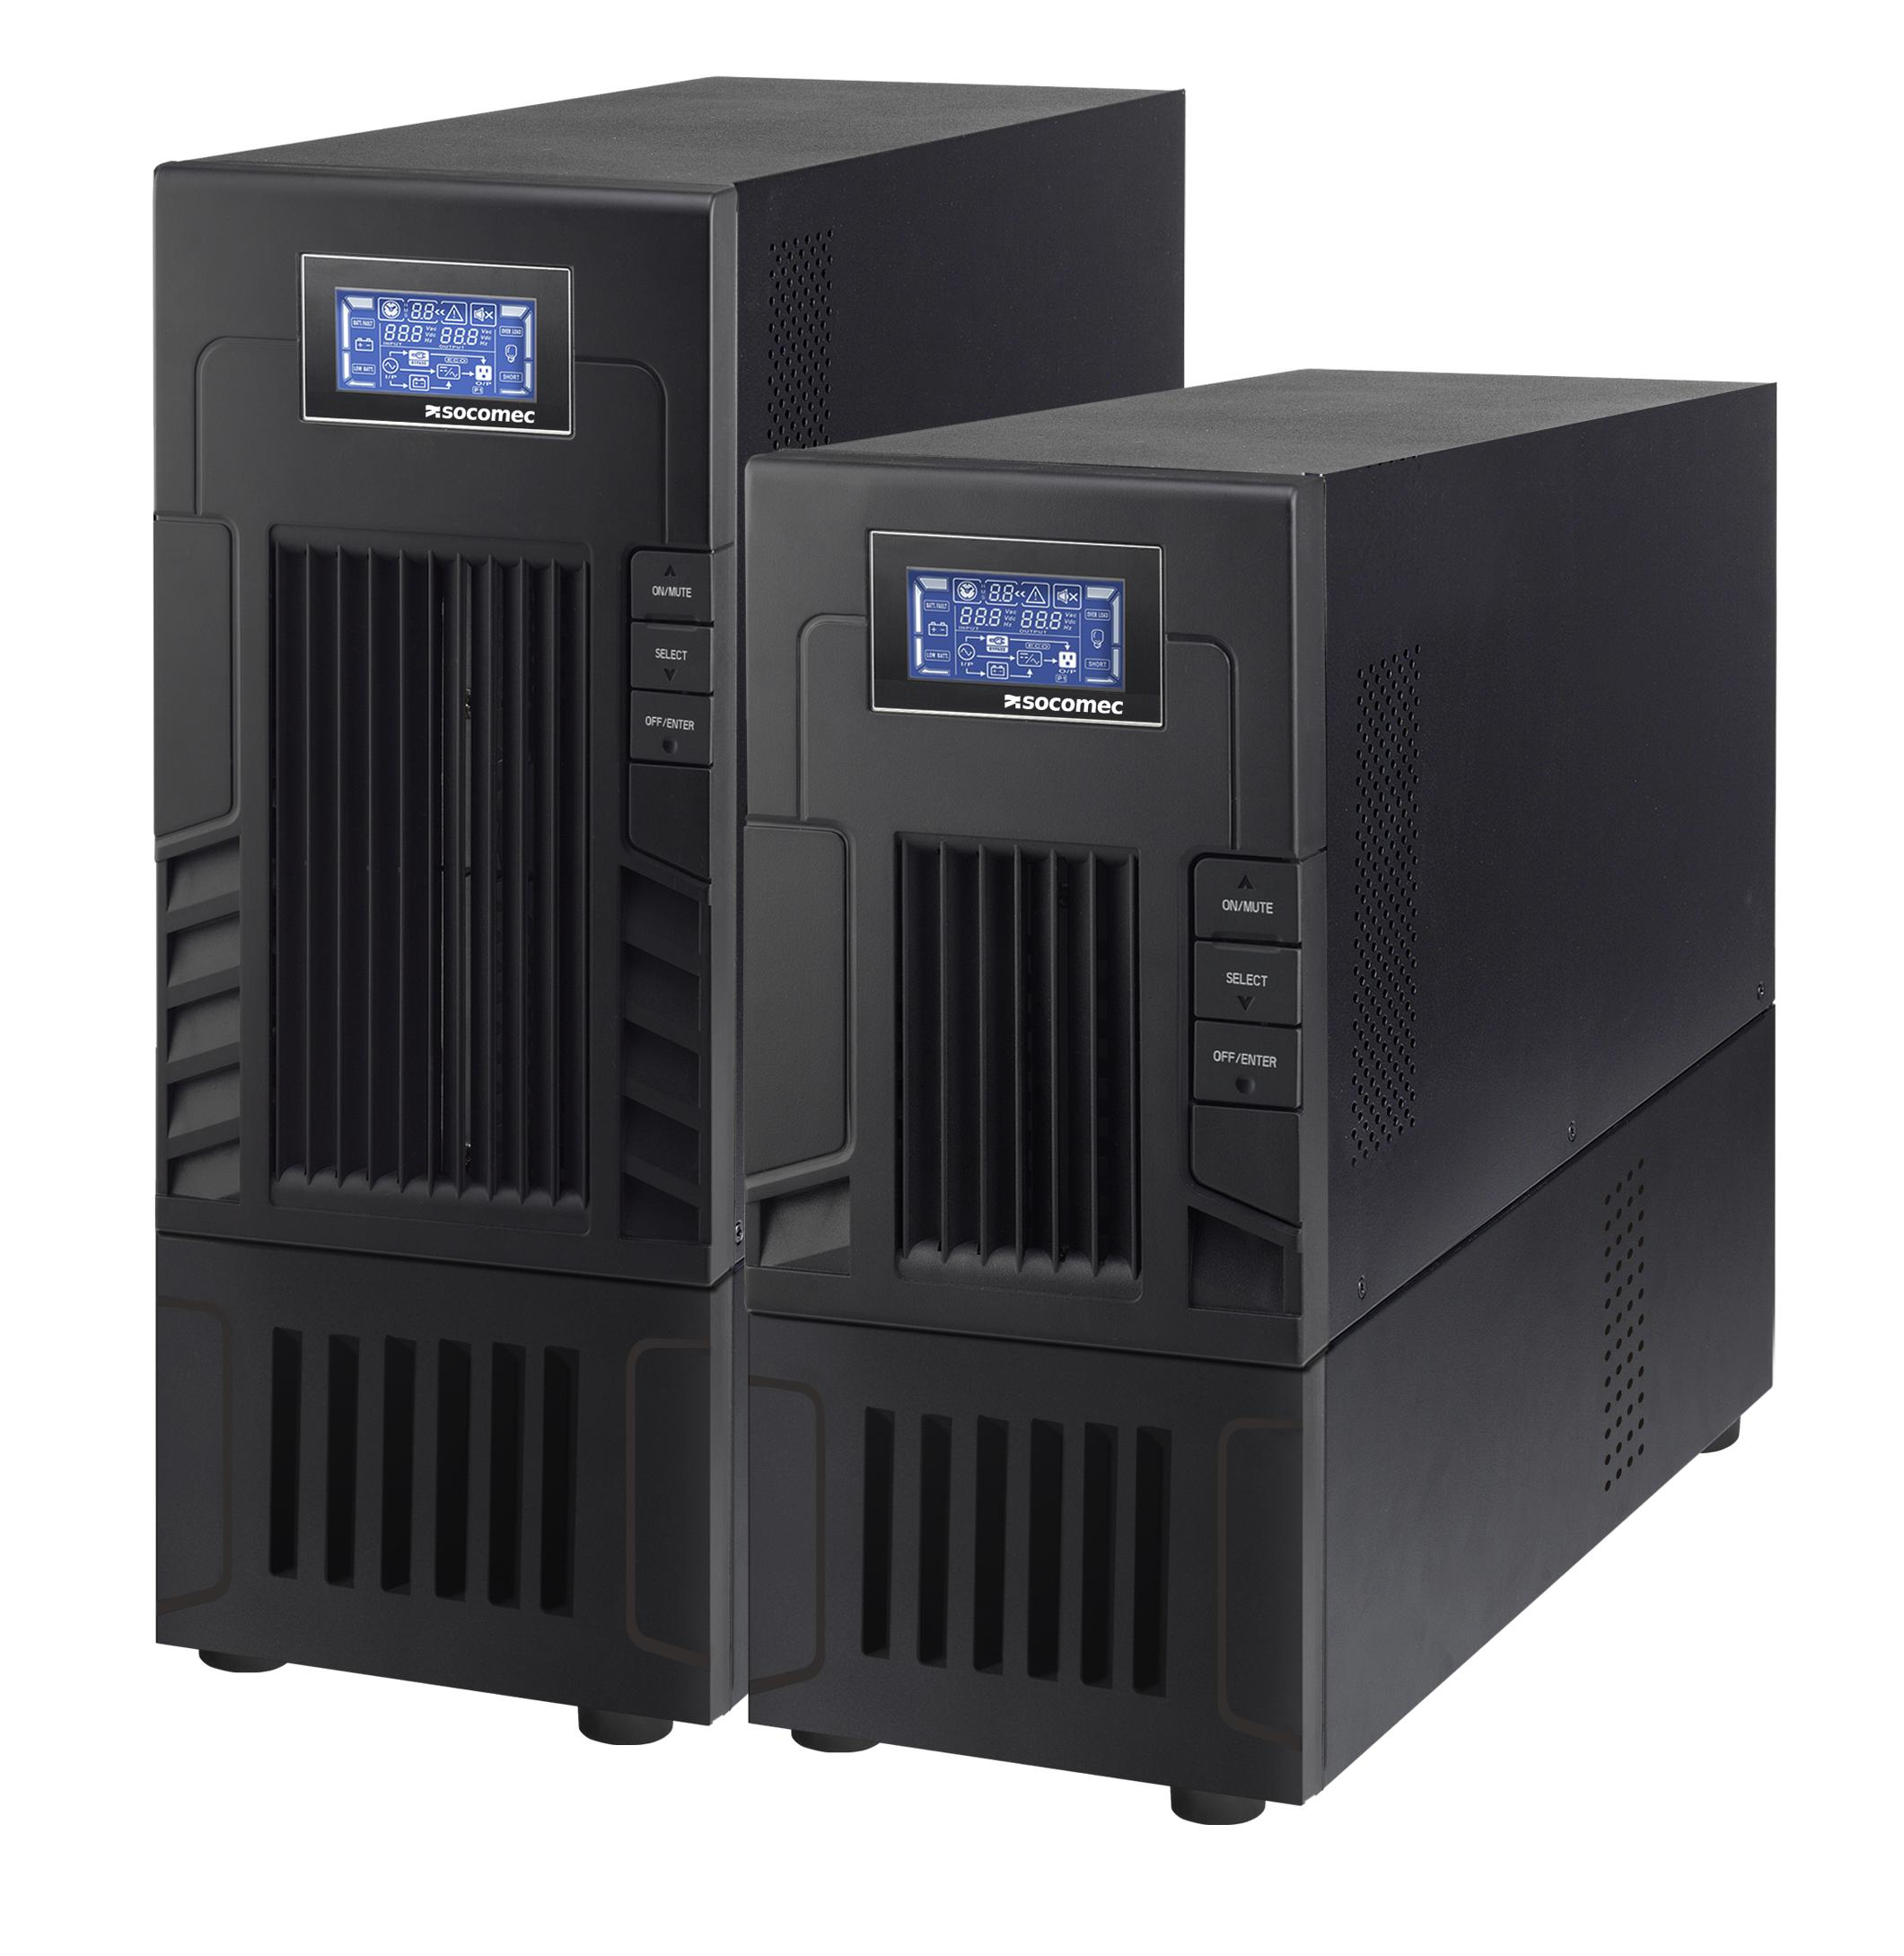 Socomec Launches New ITYS I UPS System in India